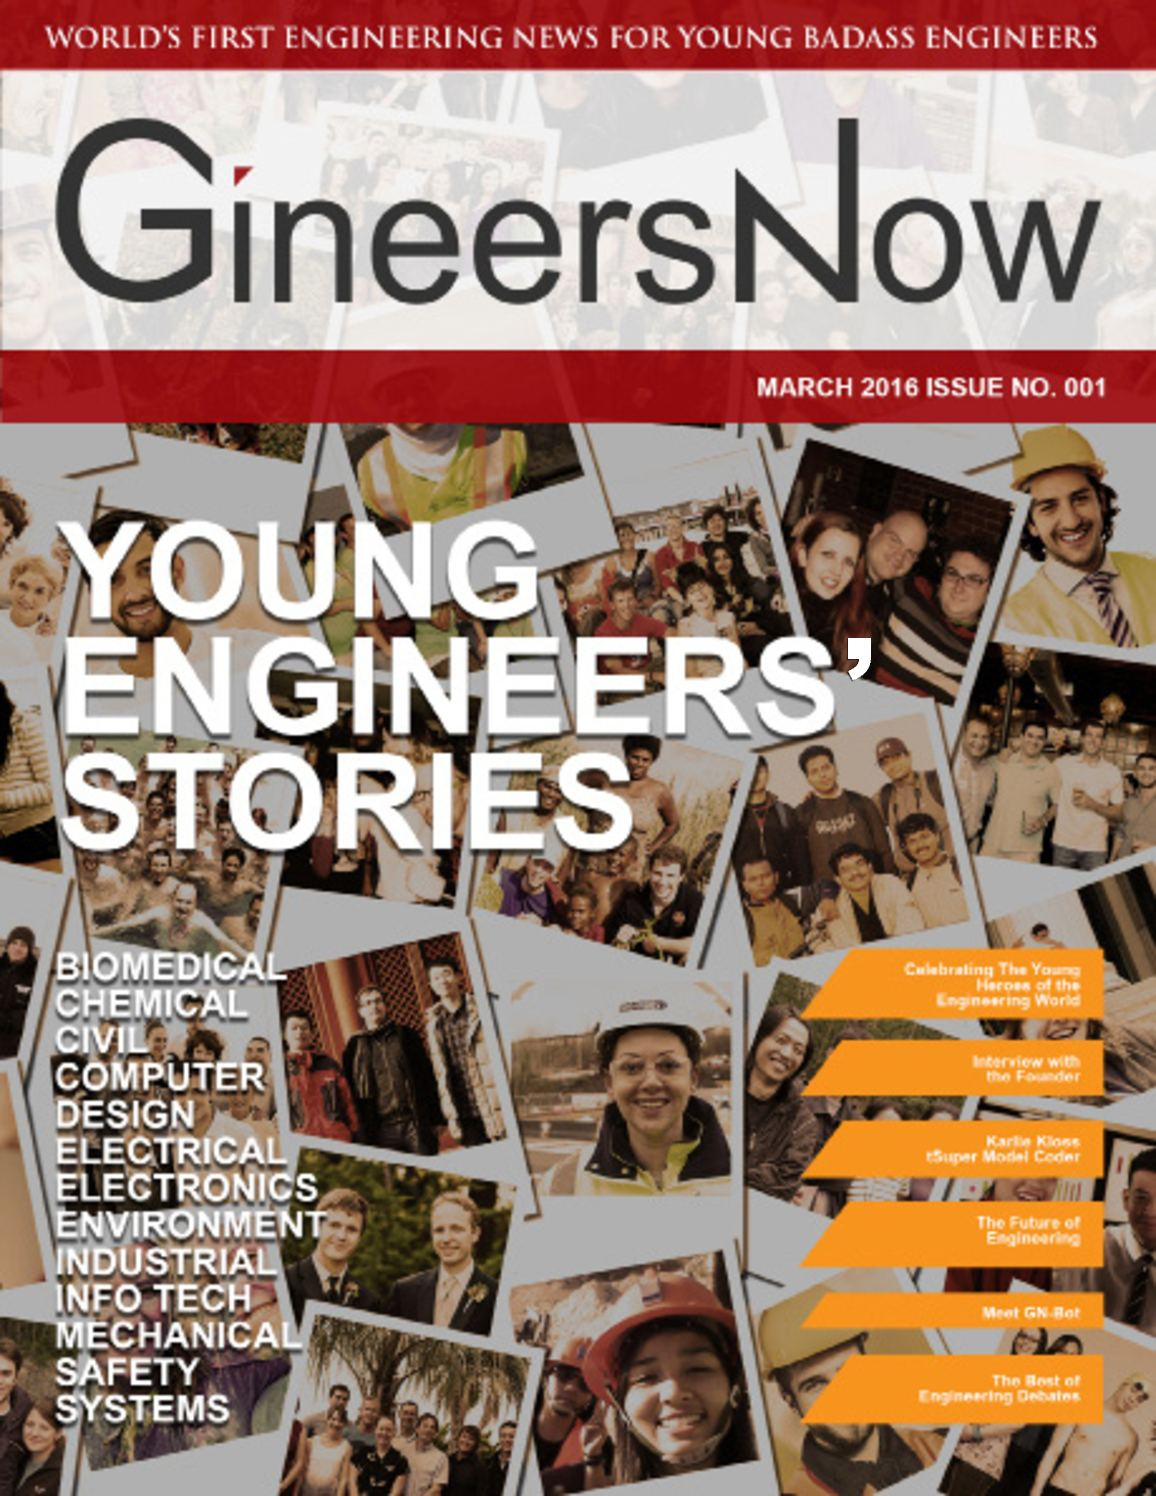 Calamo Gineersnow Engineering Magazine Issue No 001 Super Short Circuits Flown With An Rc Model Plane Richard Youtube